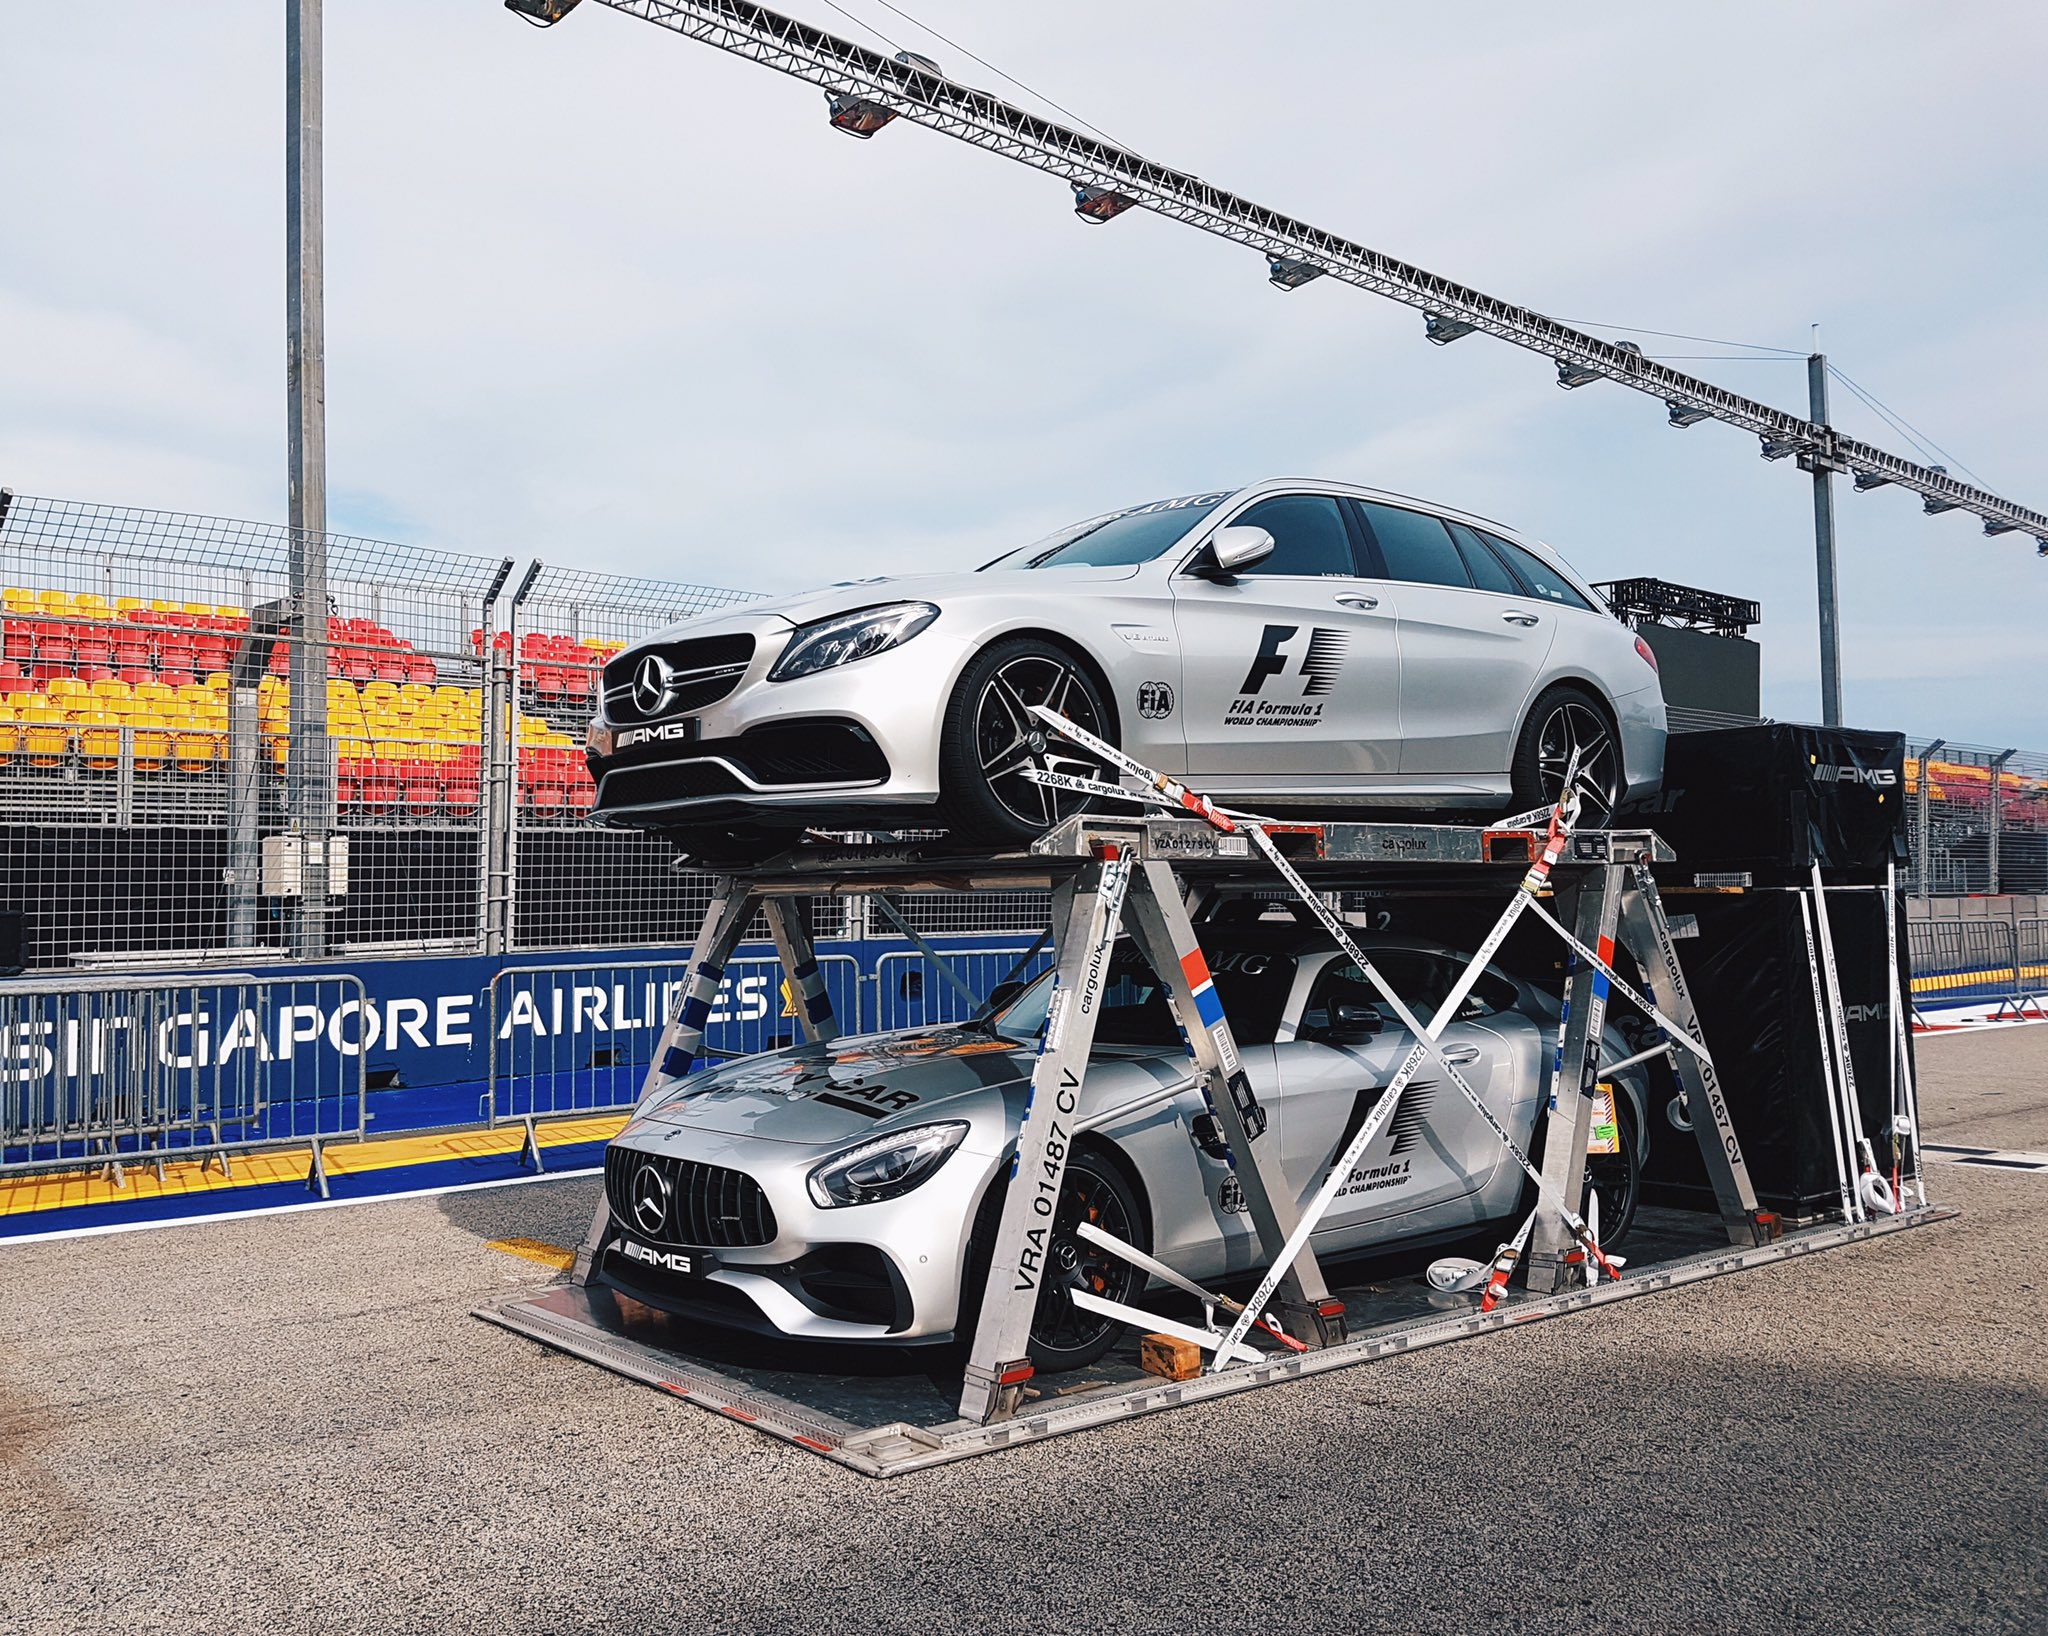 #F1 safety and medical cars are in for the #SingaporeGP next week! #F1nightrace https://t.co/lY1H20RPgW